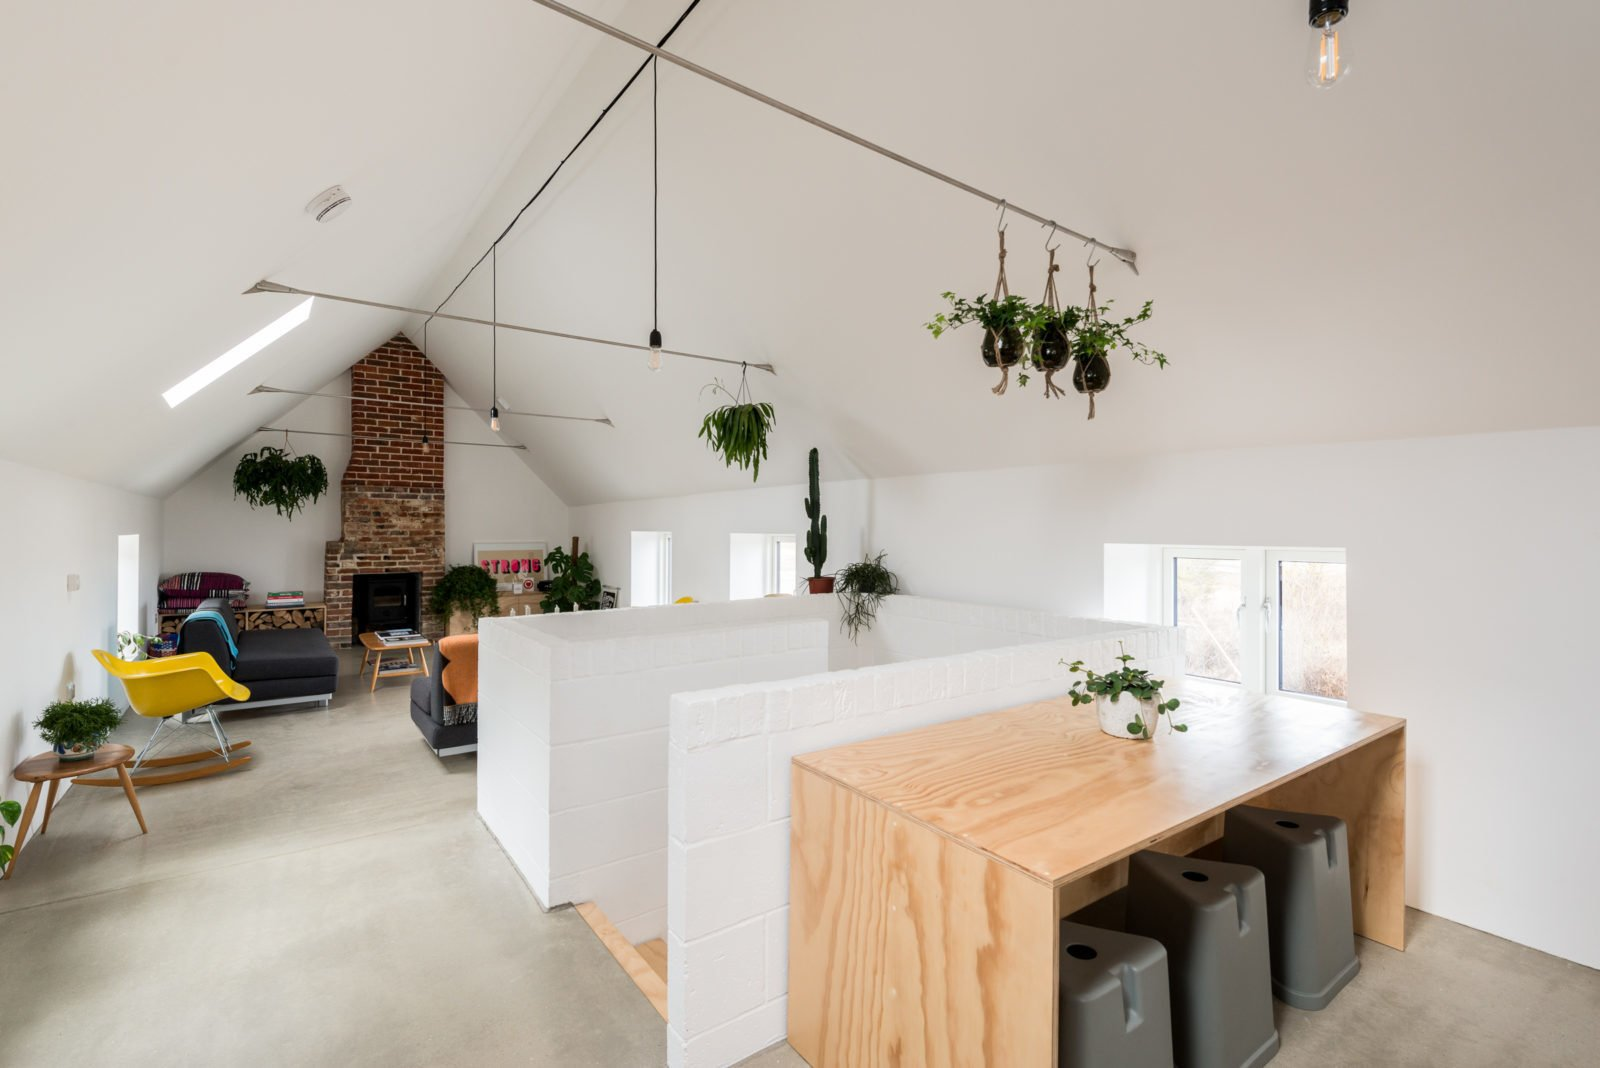 Living Room, Concrete Floor, End Tables, Wood Burning Fireplace, Pendant Lighting, Sofa, Chair, and Standard Layout Fireplace  Photo 8 of 19 in 10 Dwell-Approved, New-Old Homes in the UK from Formerly a Farm Workers' Cottage, This Cool Norfolk Home Costs Just Over $1 Million